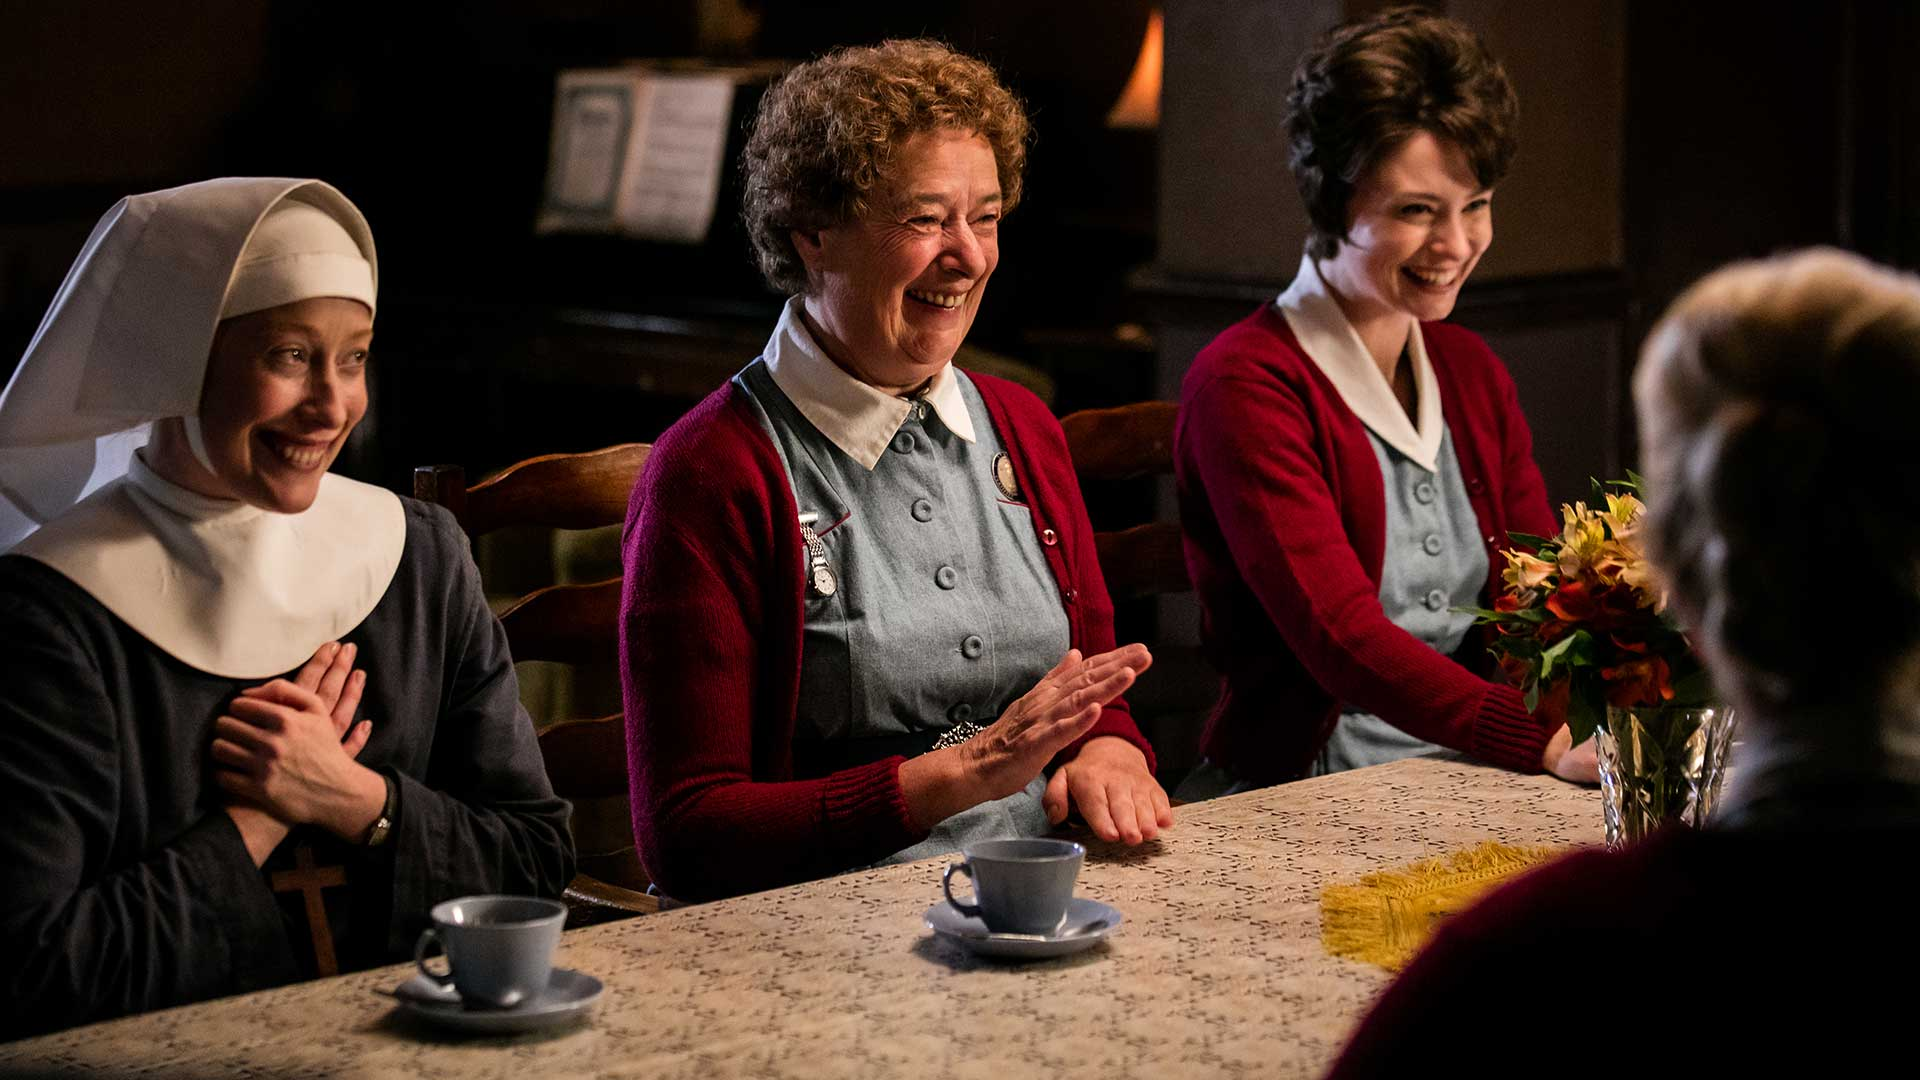 call_midwife6_seas-finale_table_hero